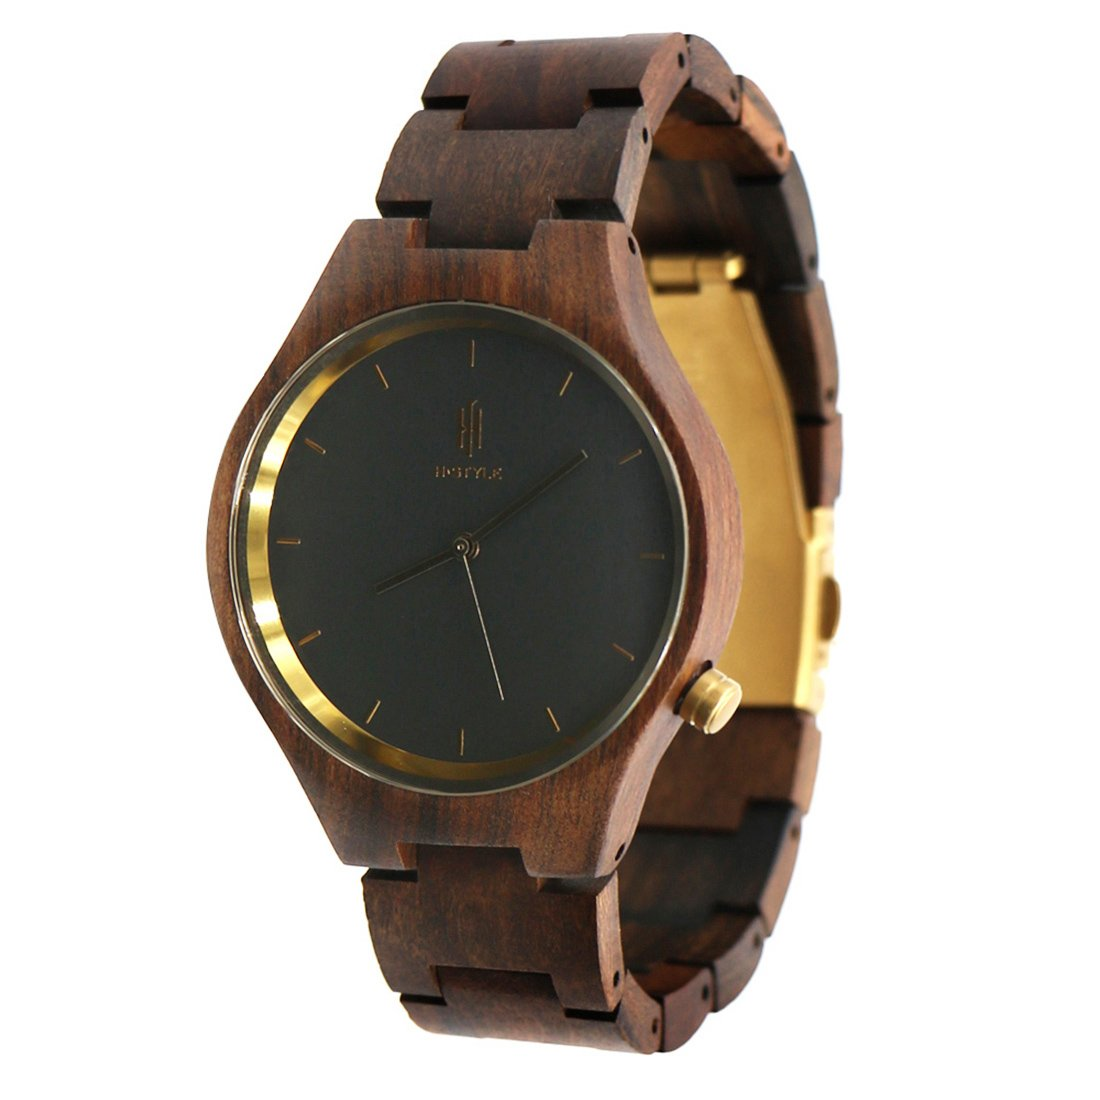 Hstyle Fashion Men's Handmade Chocolate Wooden Watches Unique Natural Wood Watches with Sapphire Glass